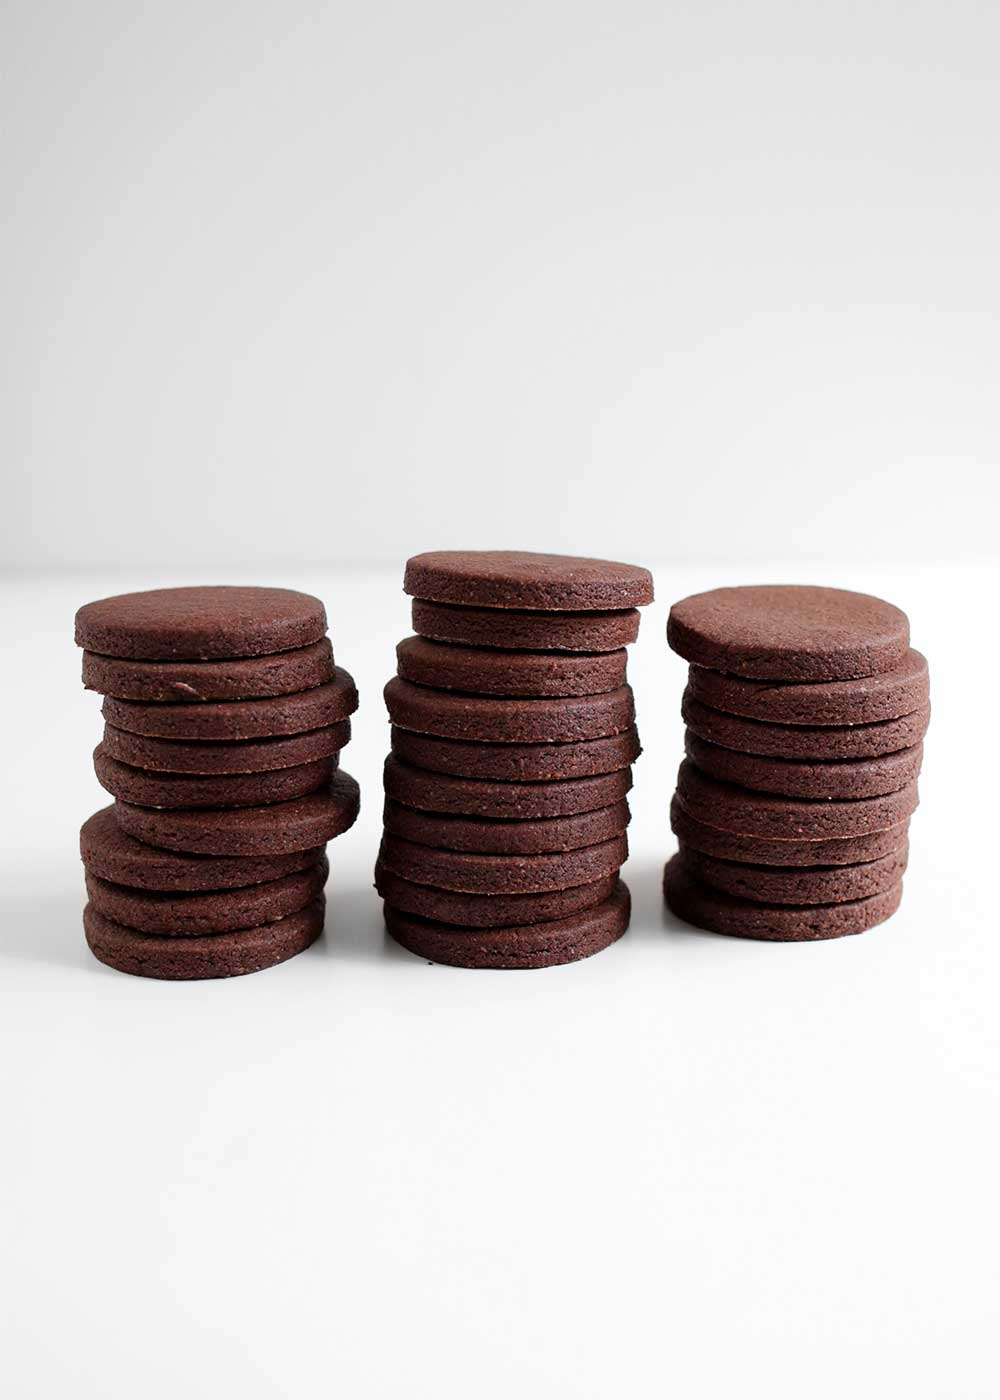 piles of Chocolate Cardamom Rye Cut-Out Cookies from the faux martha